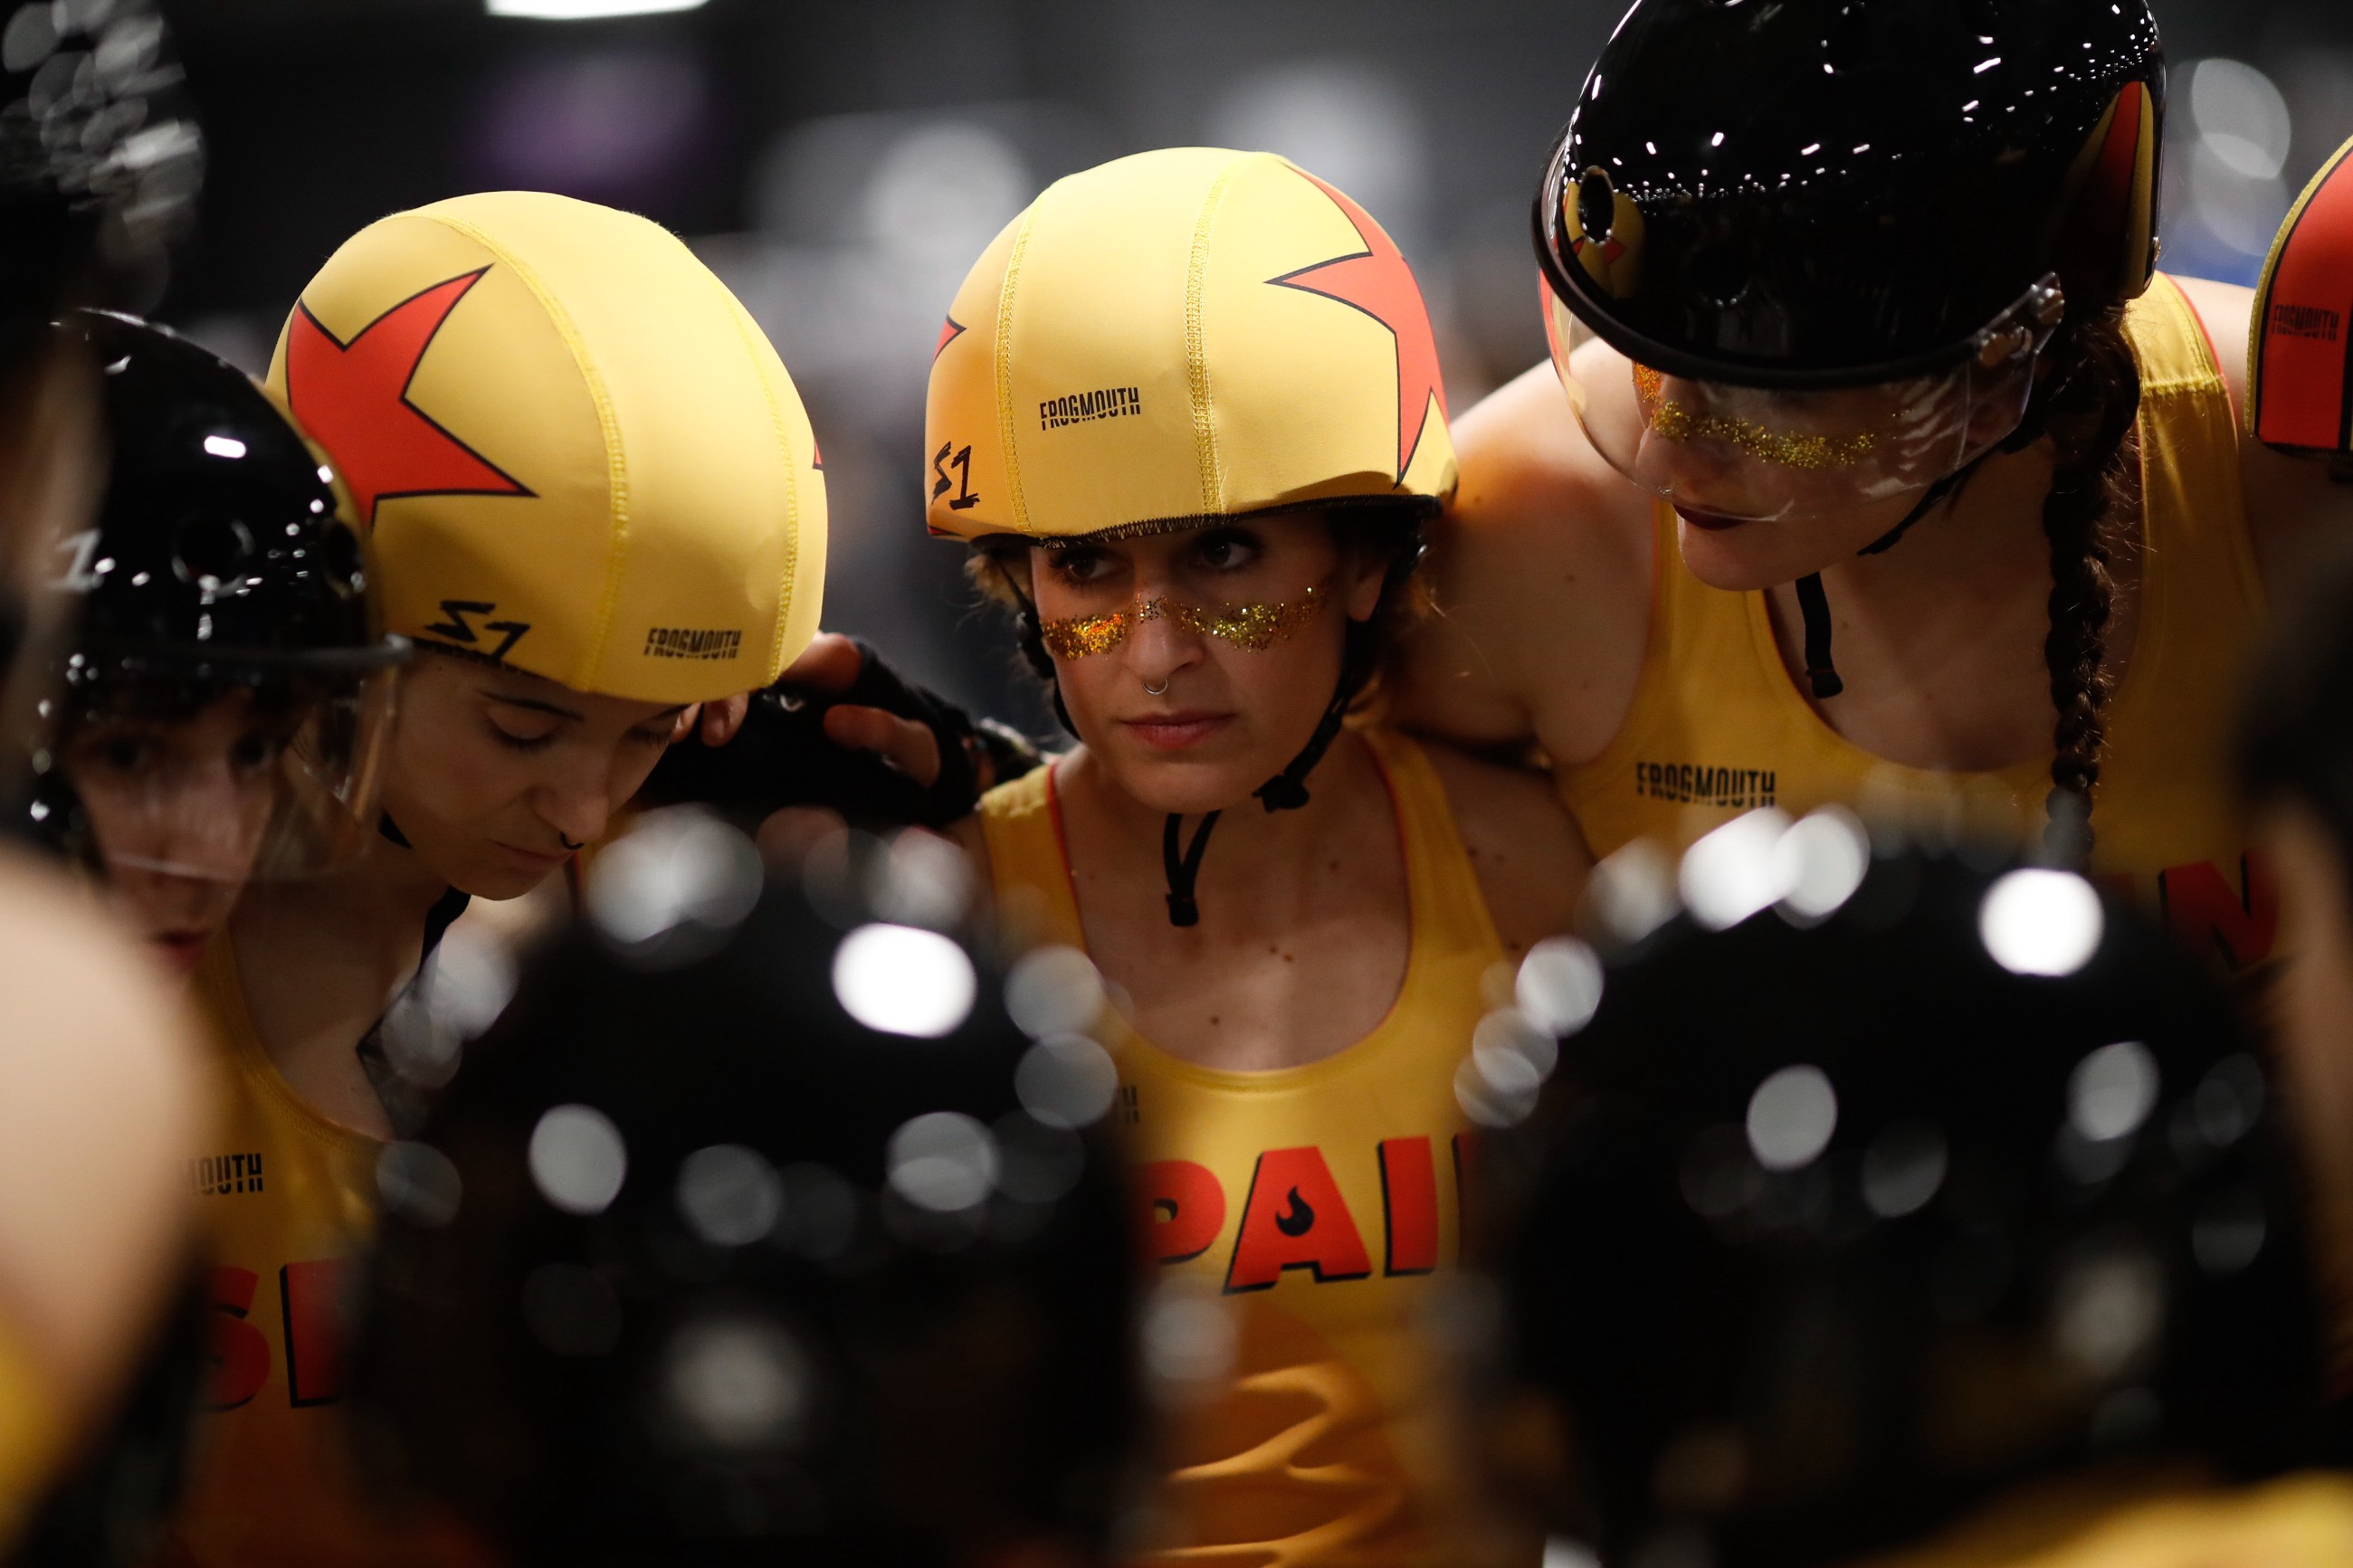 The Best Roller Derby World Cup Photos – Frogmouth – Medium 36a9c2061